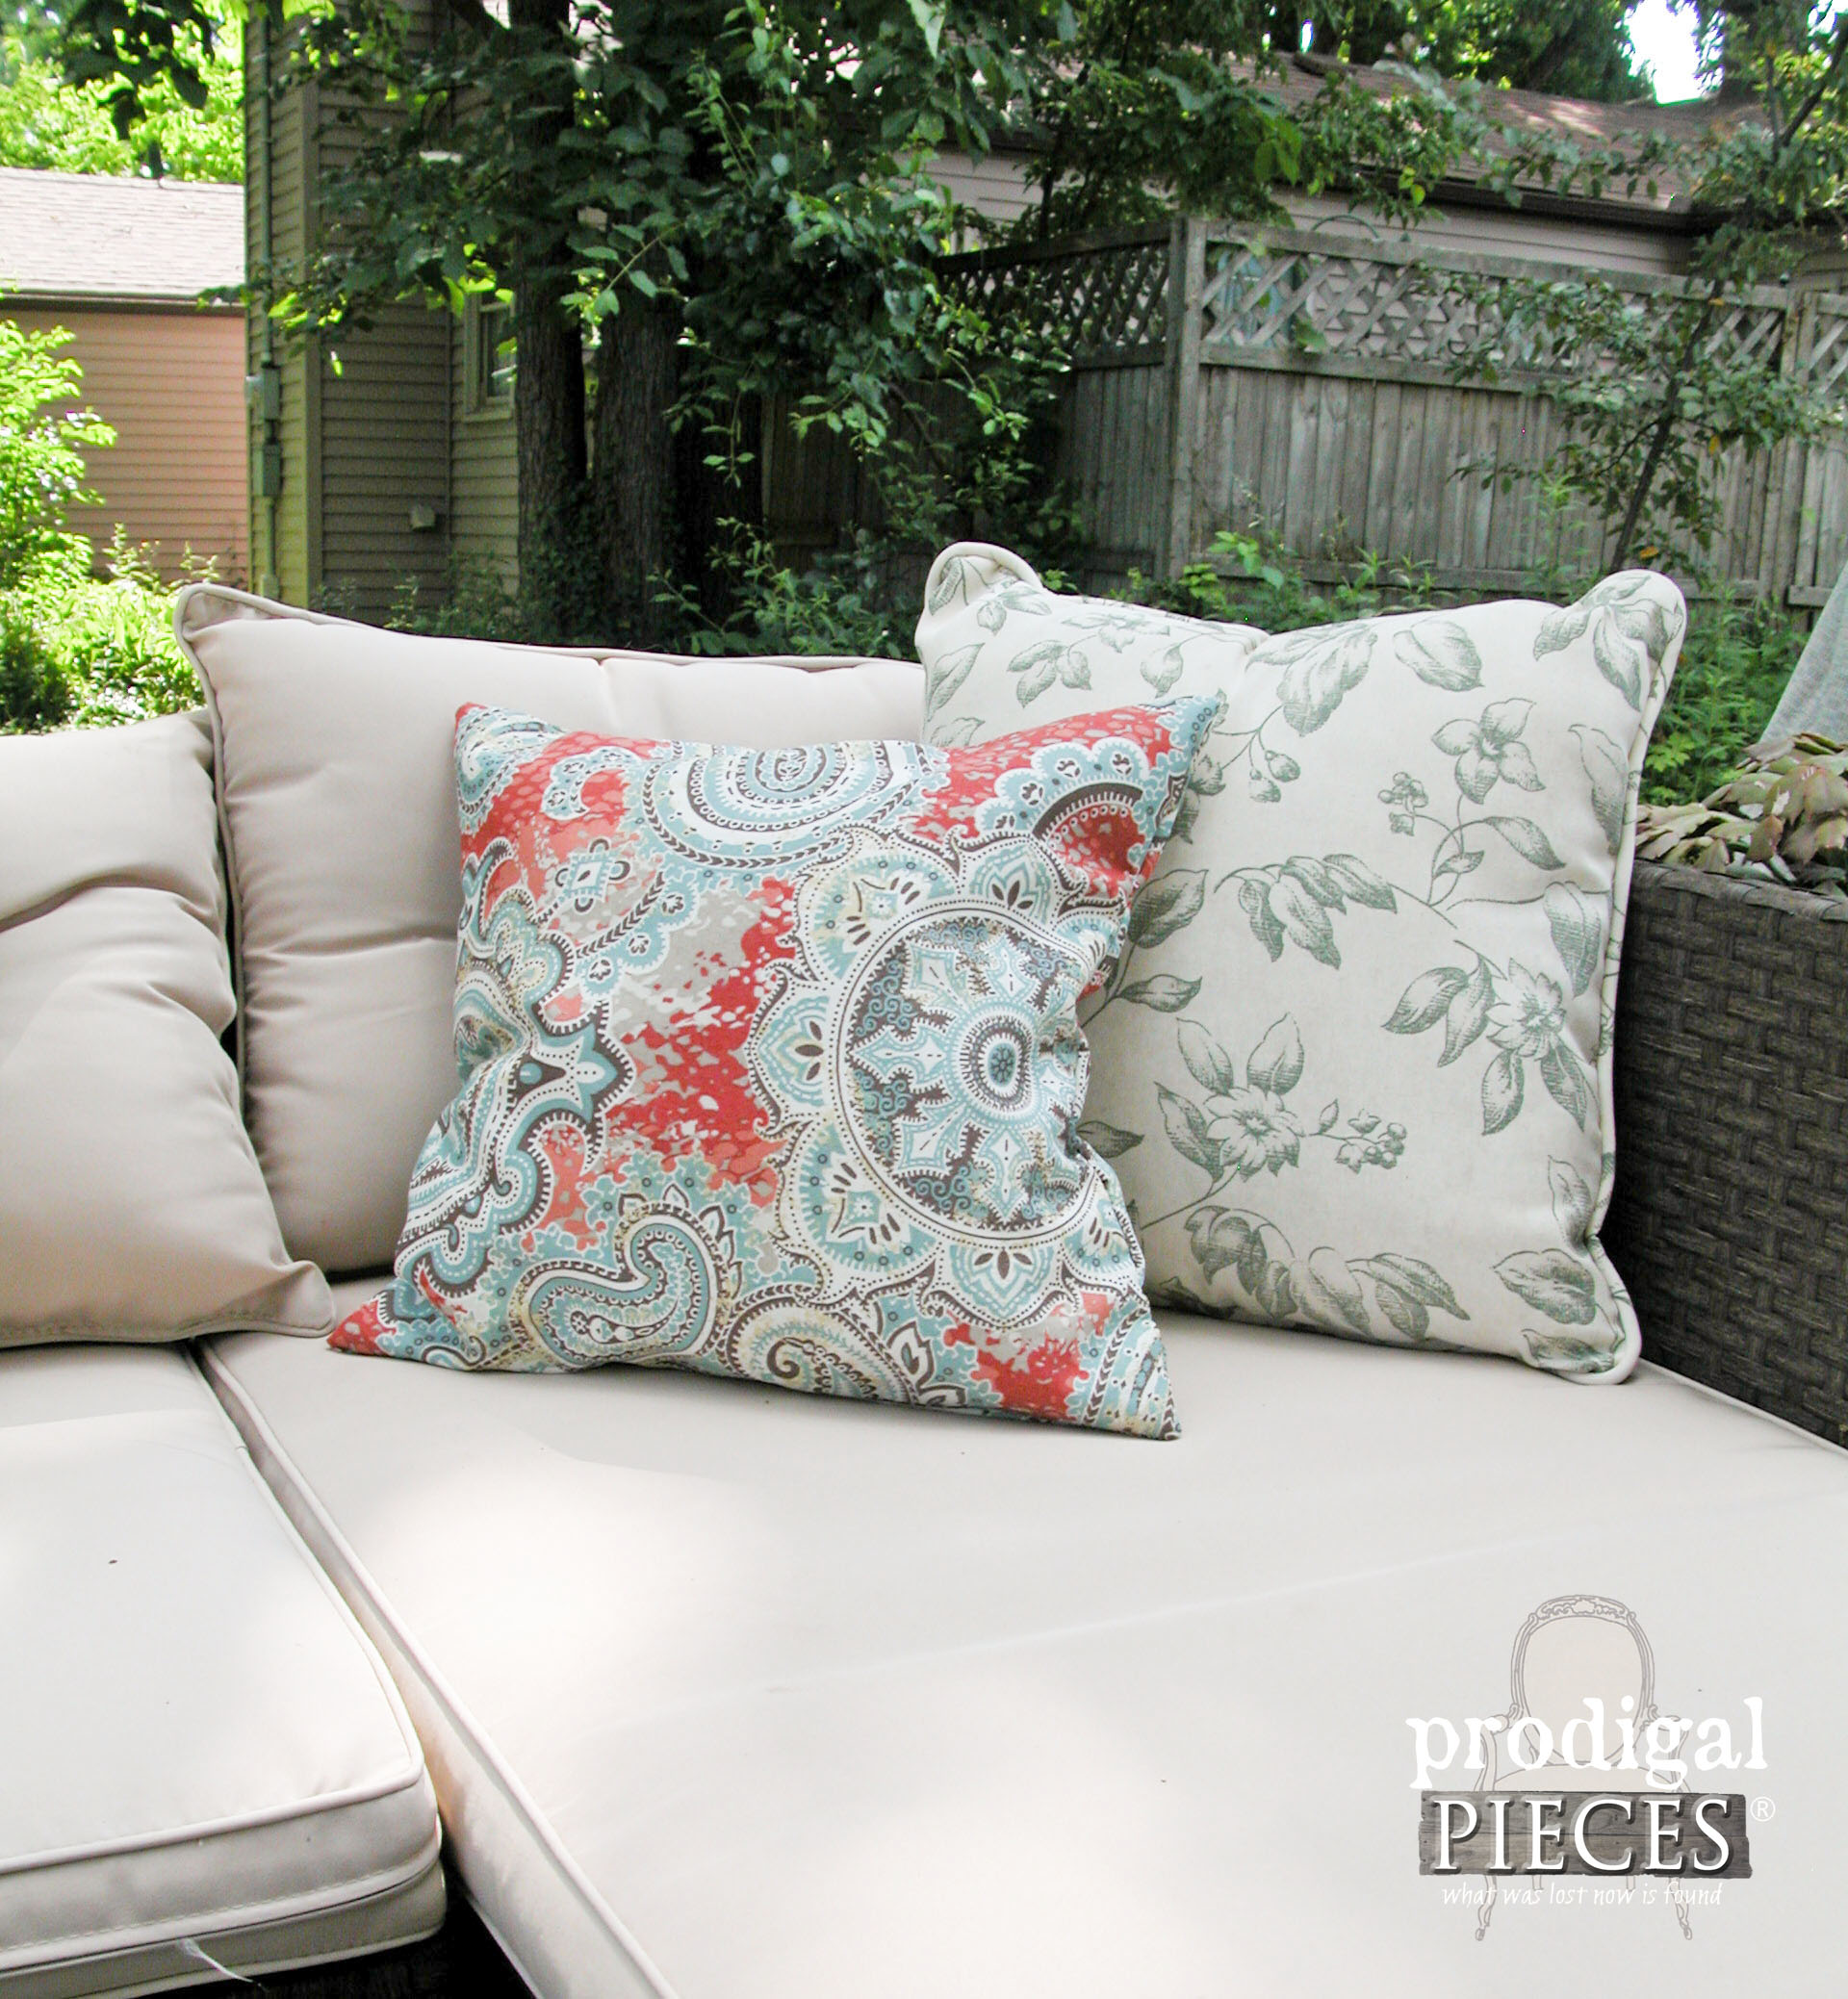 Pair of DIY Outdoor Pillows by Prodigal Pieces | www.prodigalpieces.com